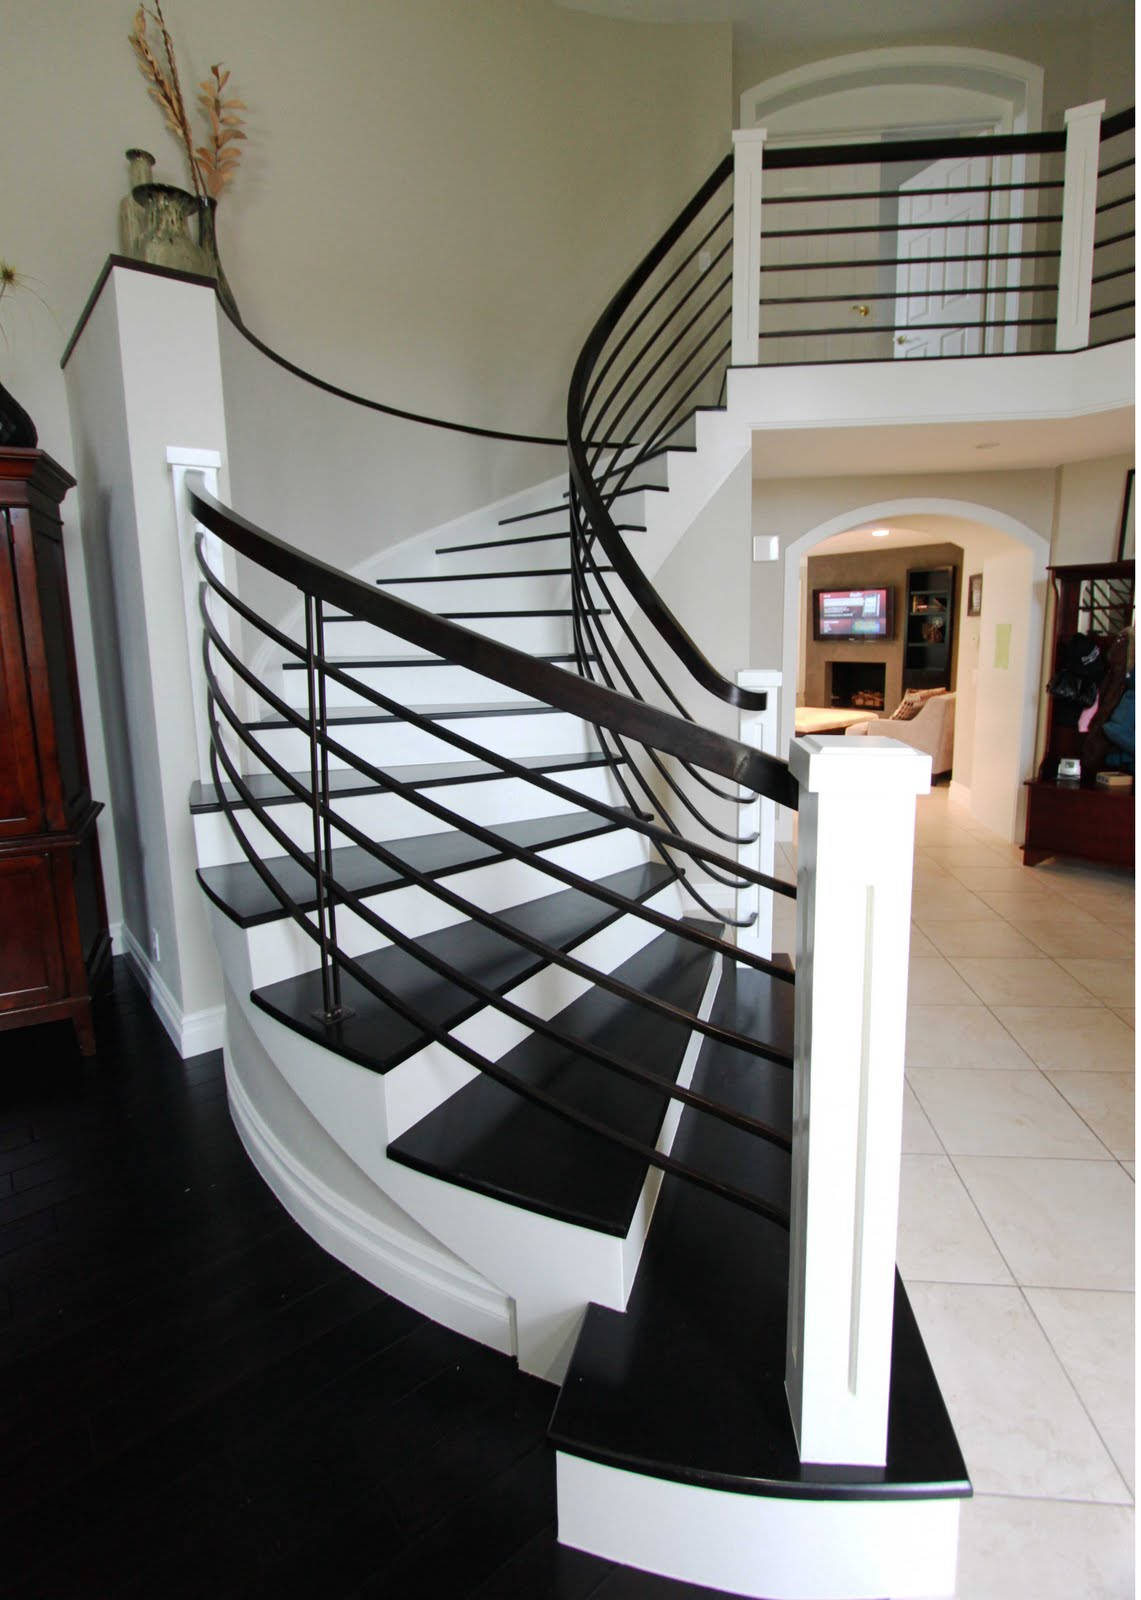 Stiles fischer interior design stairway to heaven before and after - Modern interior design with spiral stairs contemporary spiral staircase design ...